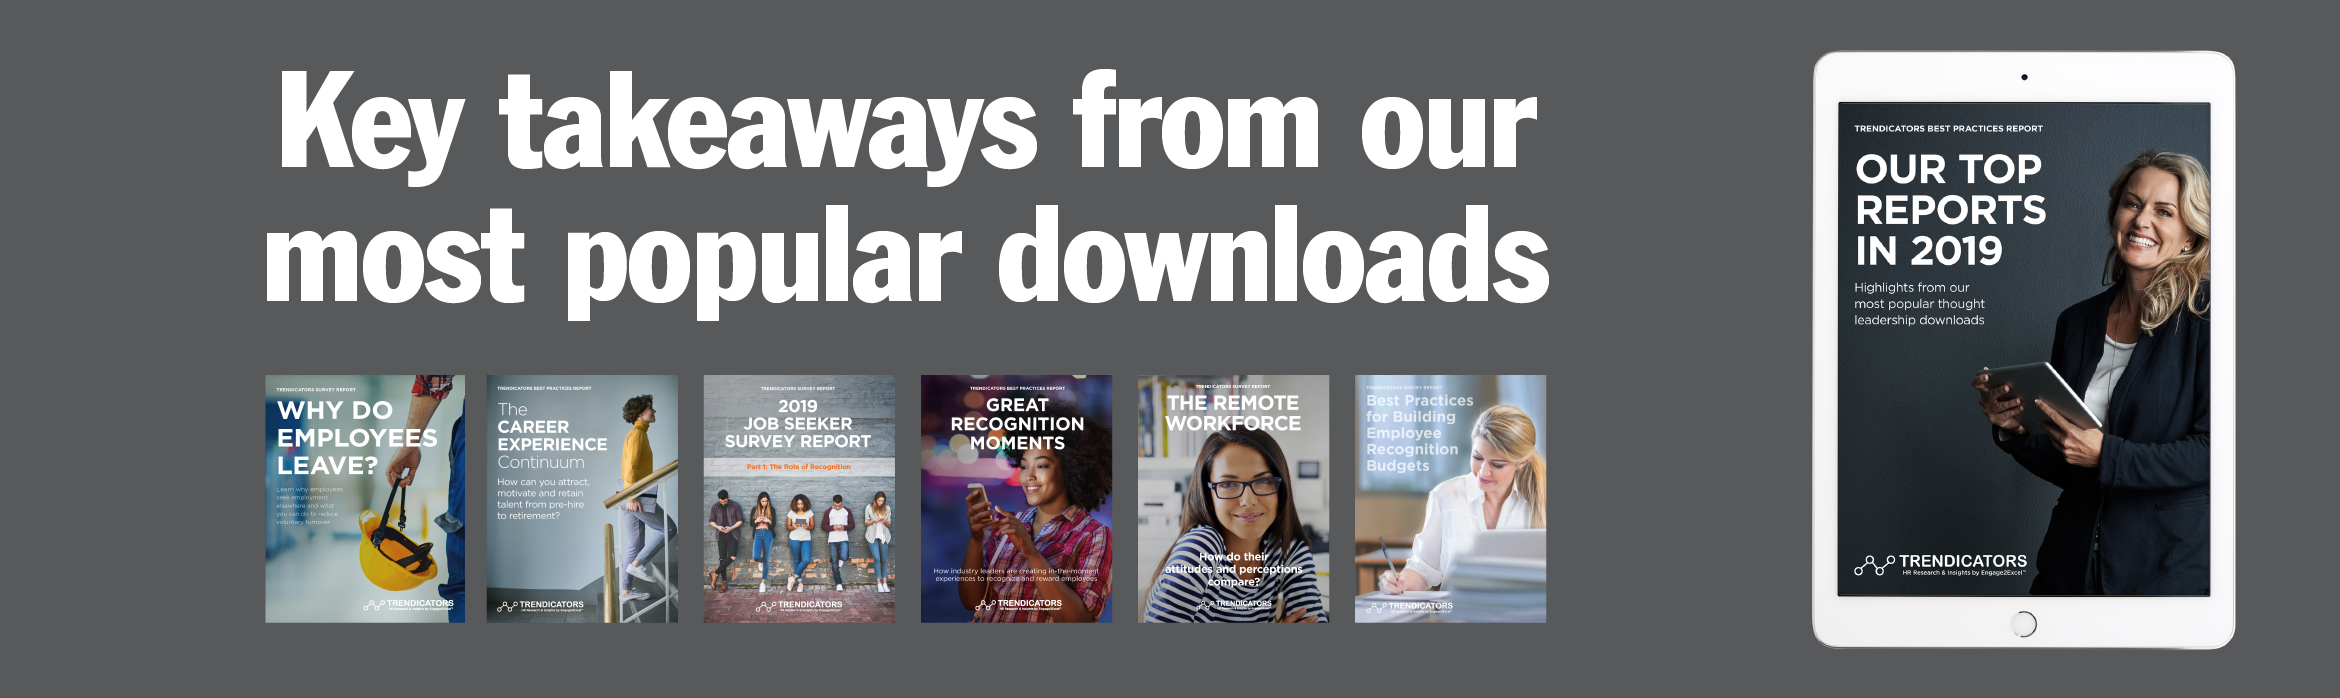 Key takeaways from our most popular downloads